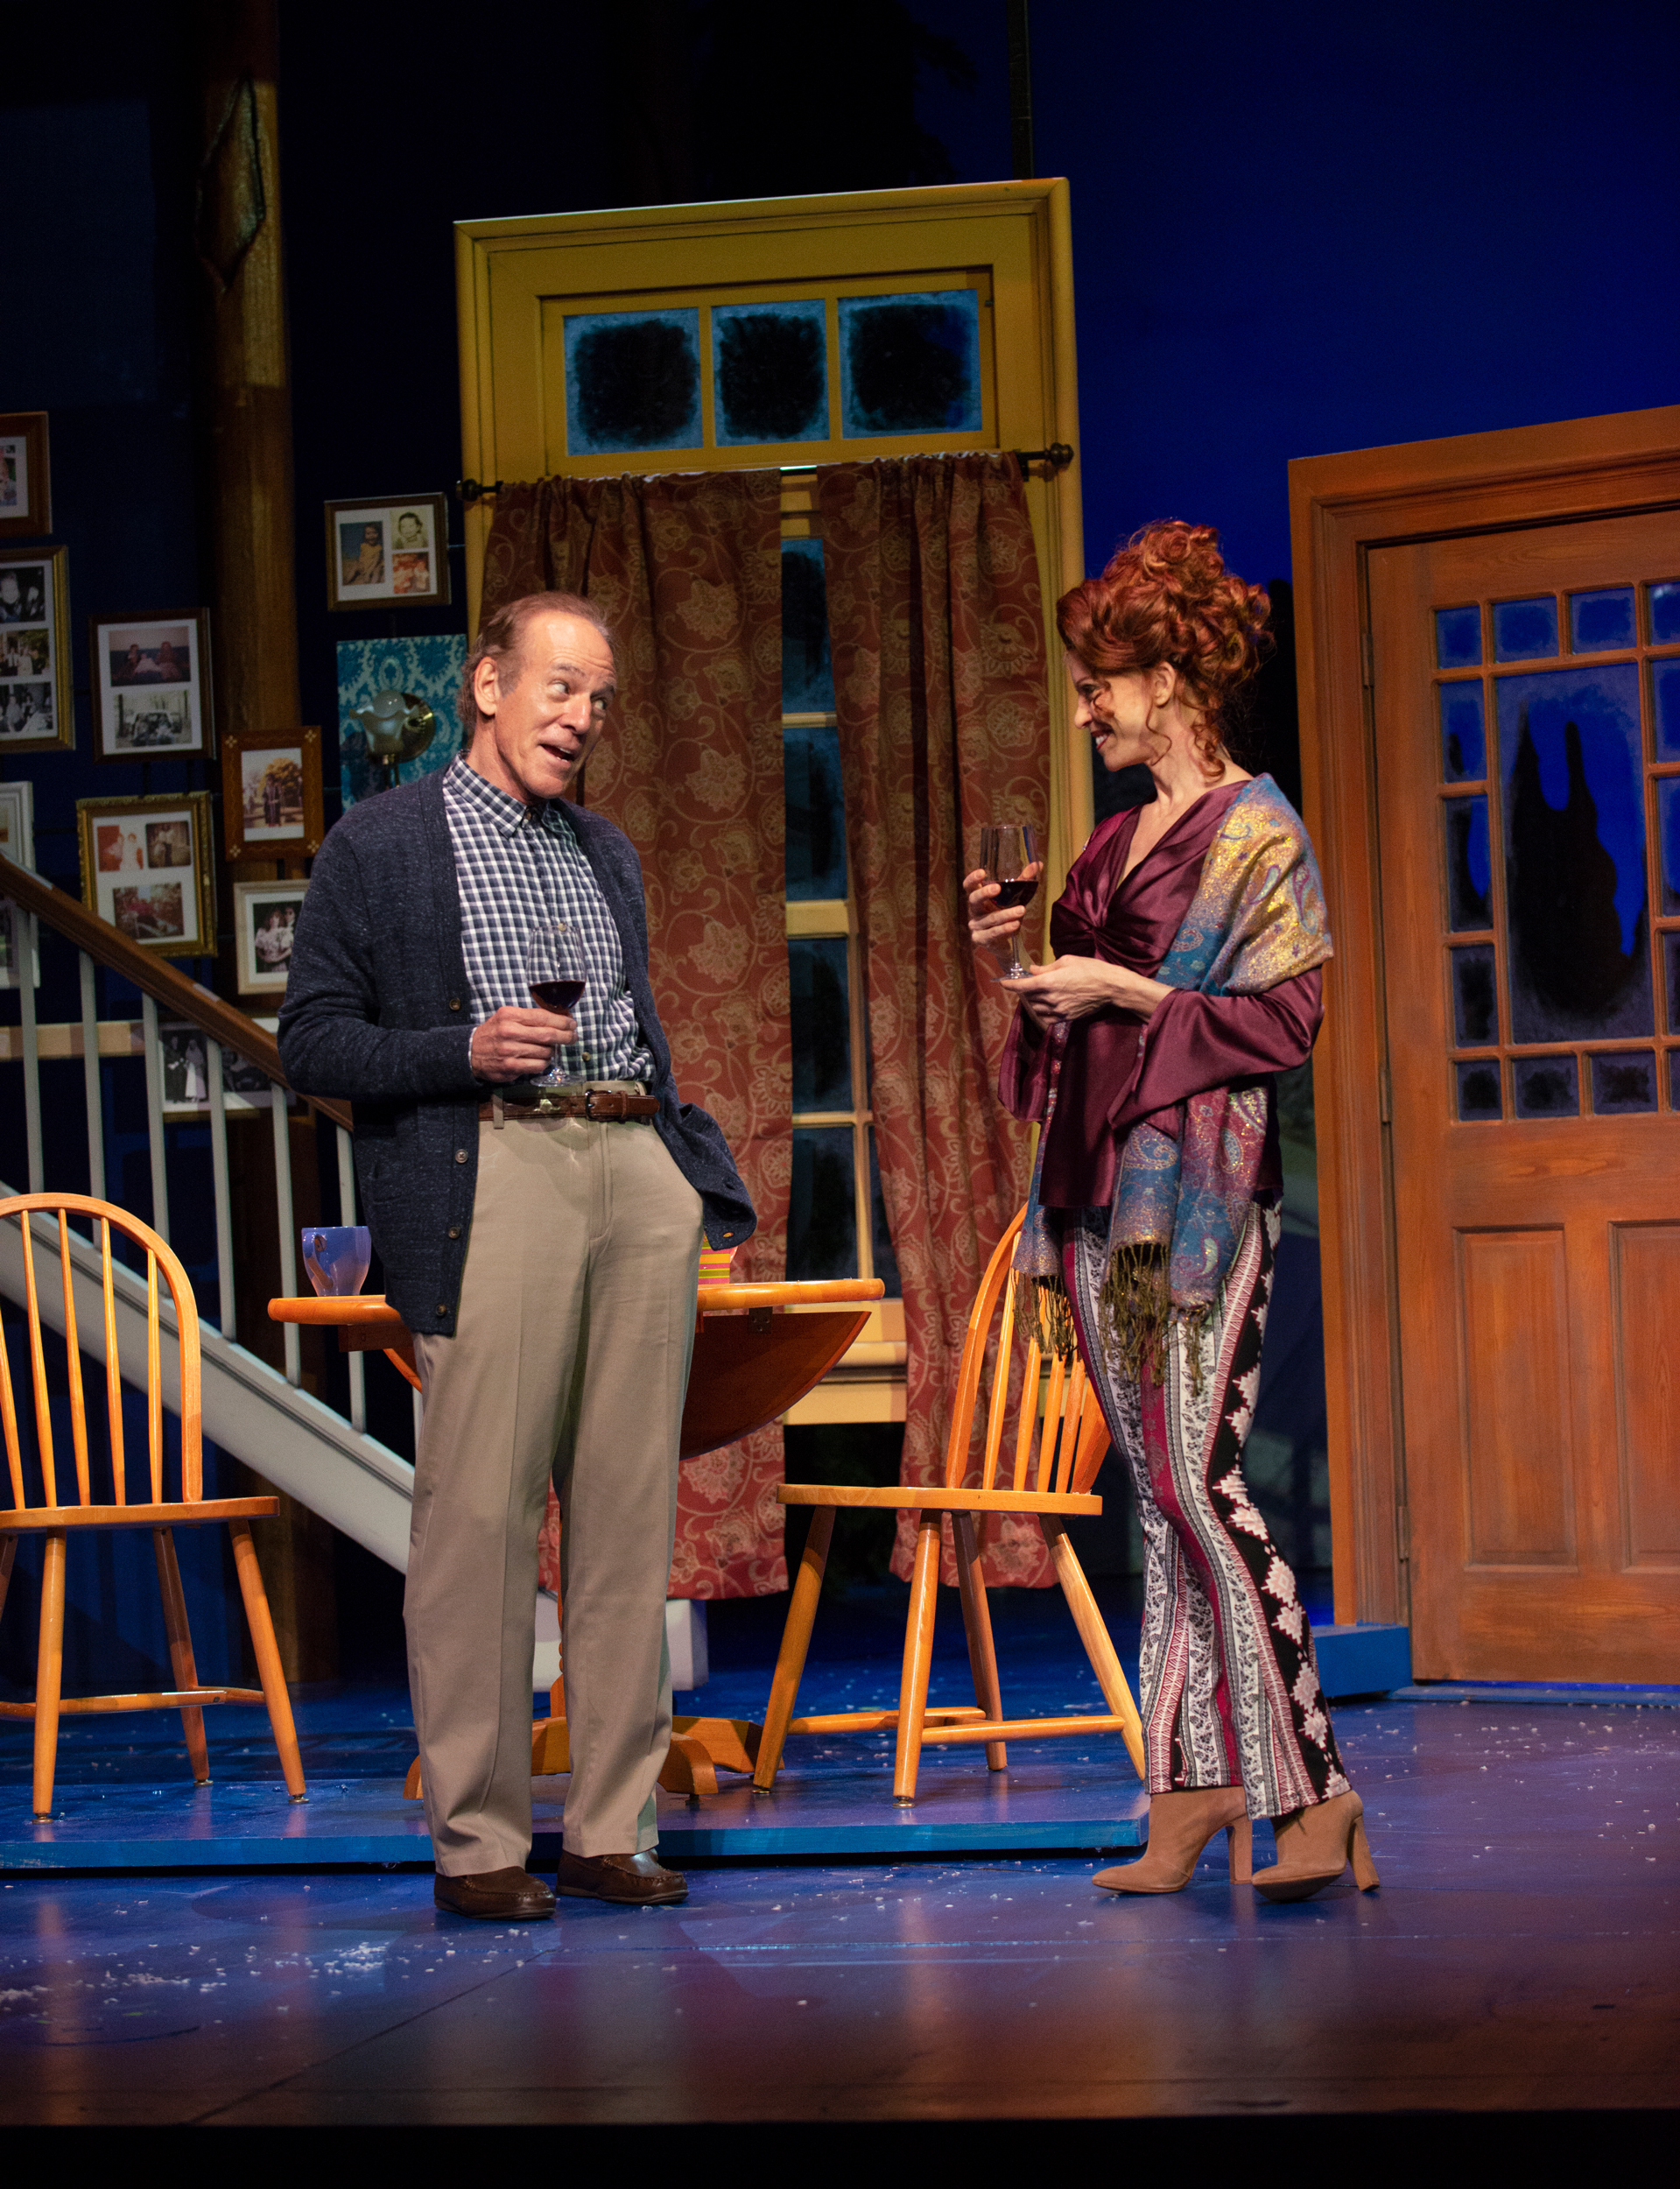 Mark Jacoby and Leslie Stevens in Grumpy Old Men the Musical at the Ogunquit Playhouse. Photo by Gary Ng.